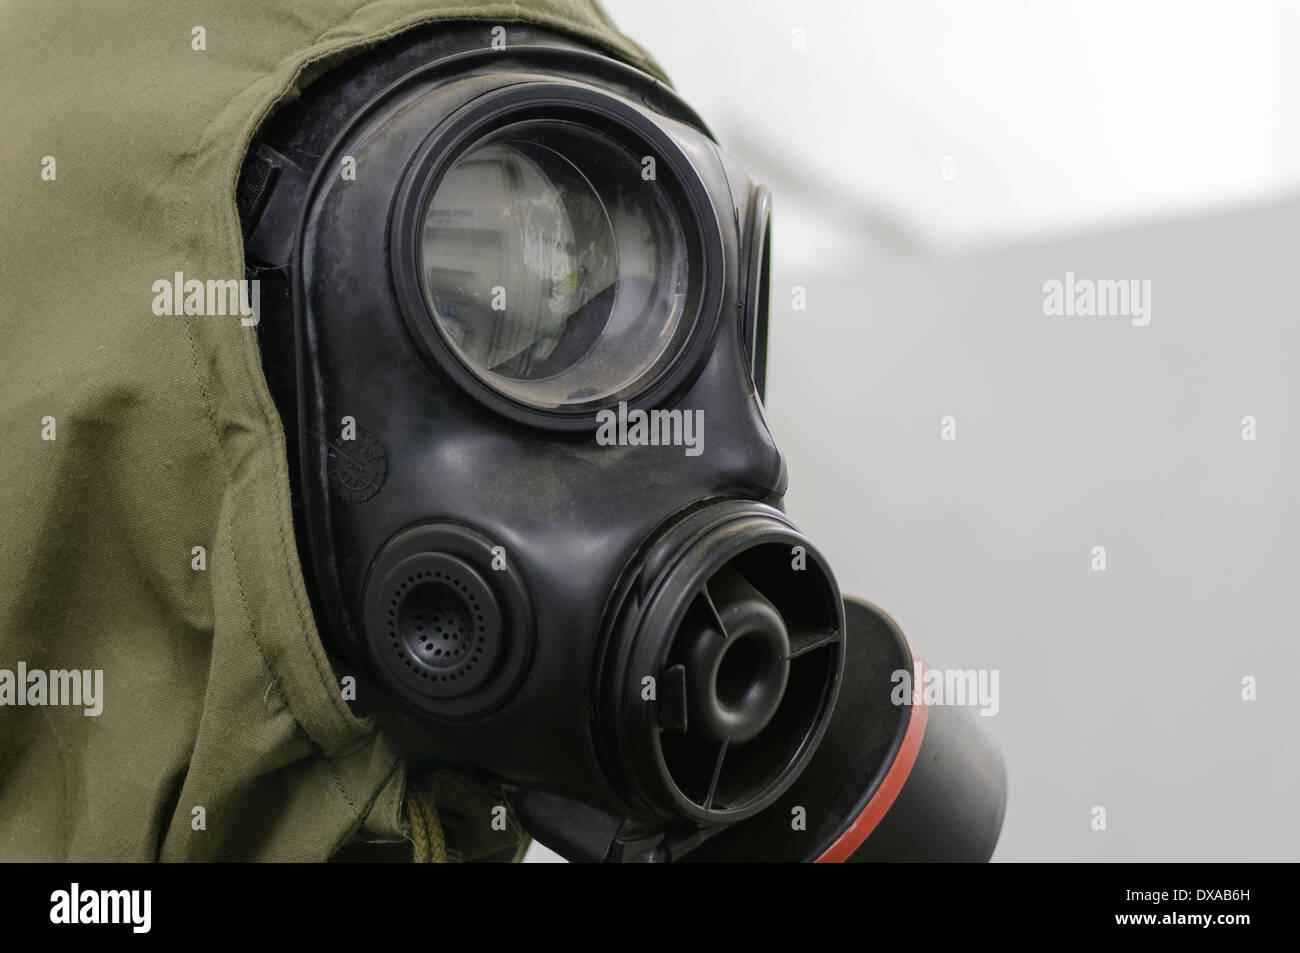 Gasmask and Nuclear, Biological and Chemical (NBC) suit - Stock Image